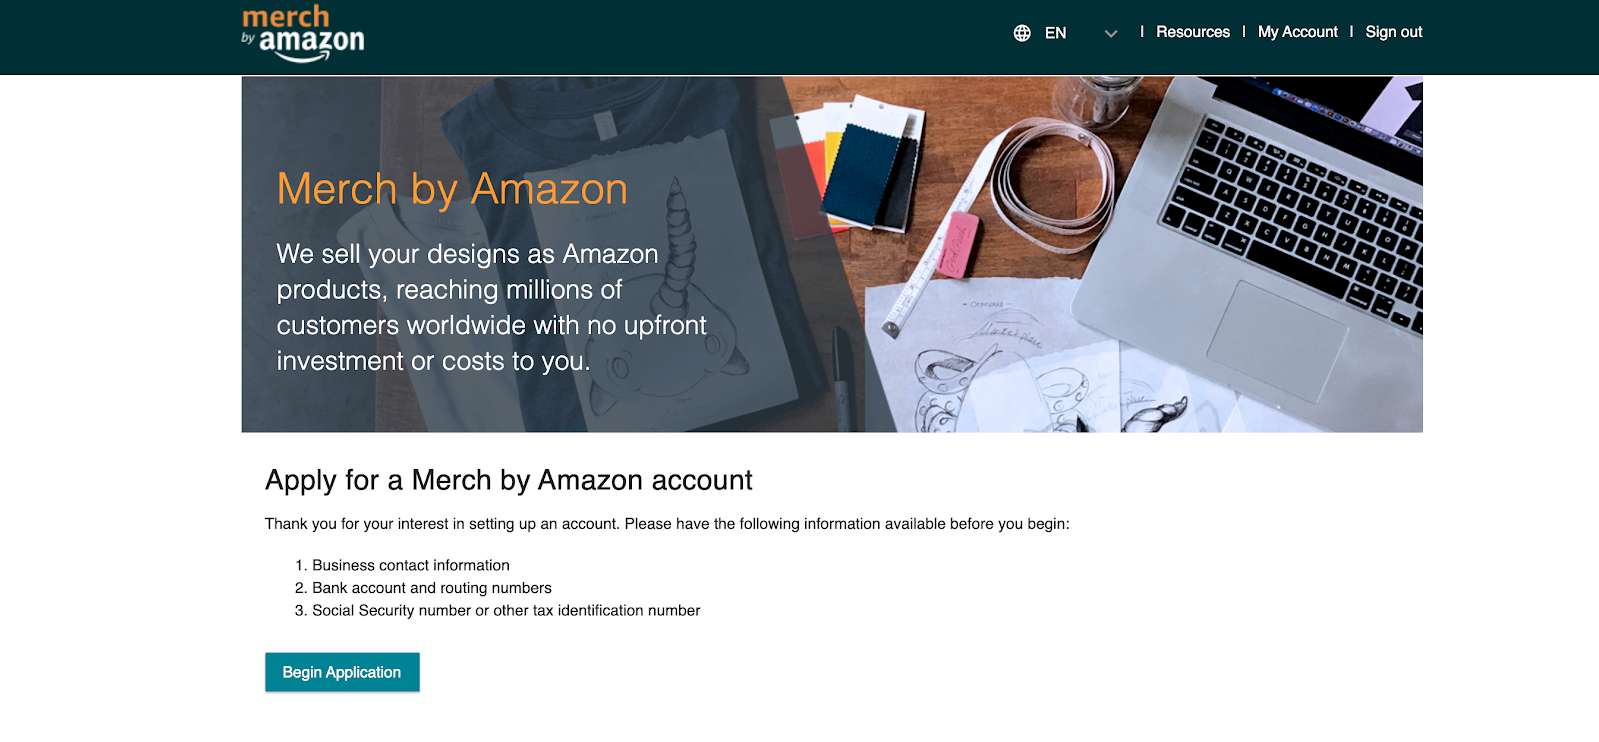 apply for merch by amazon account